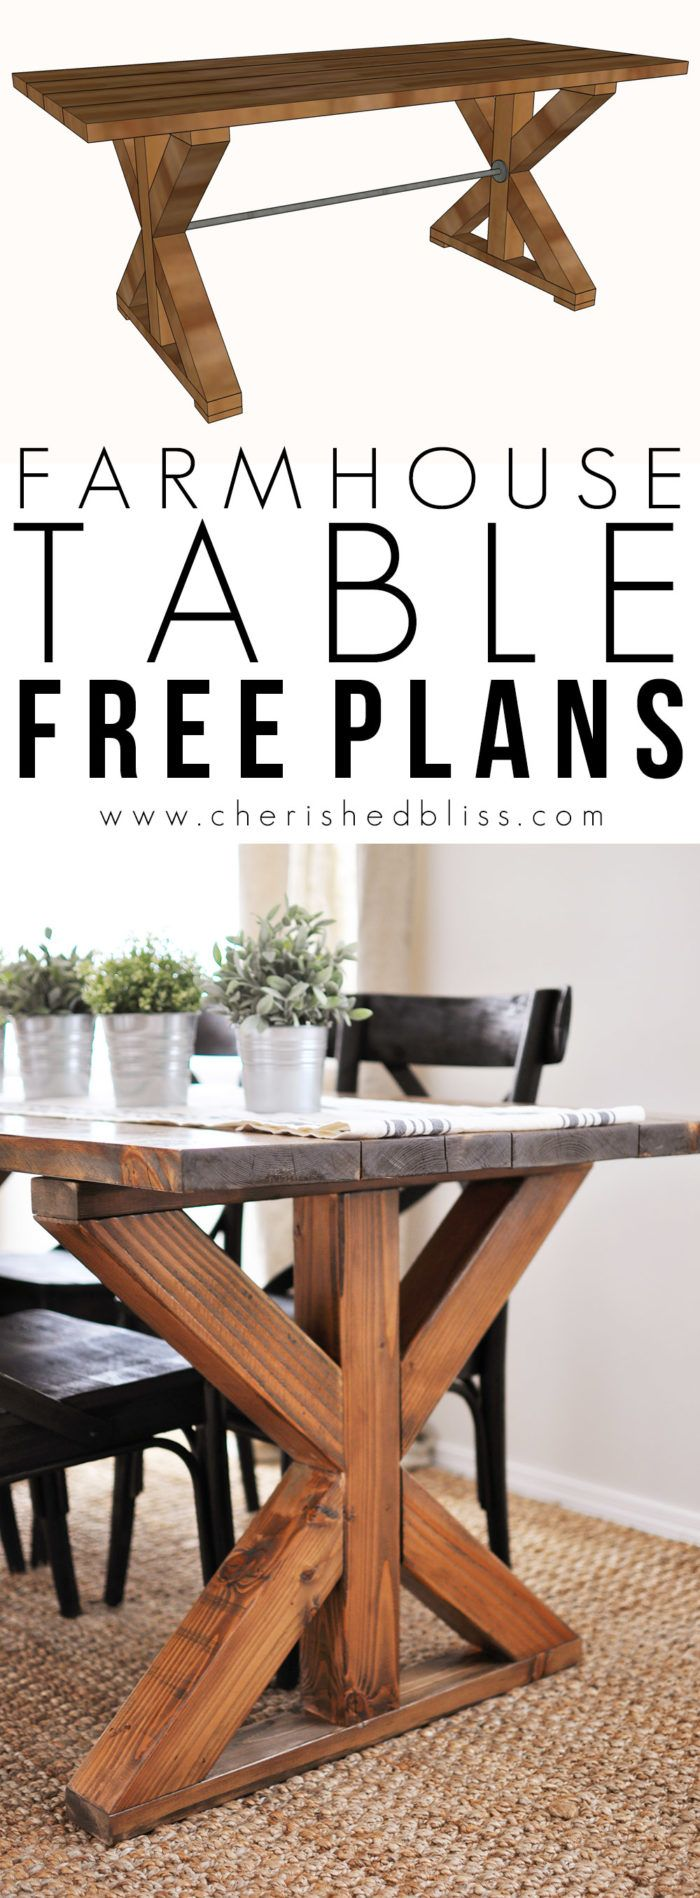 X Brace Farmhouse Table | Farmhouse table, Farmhouse style and ...